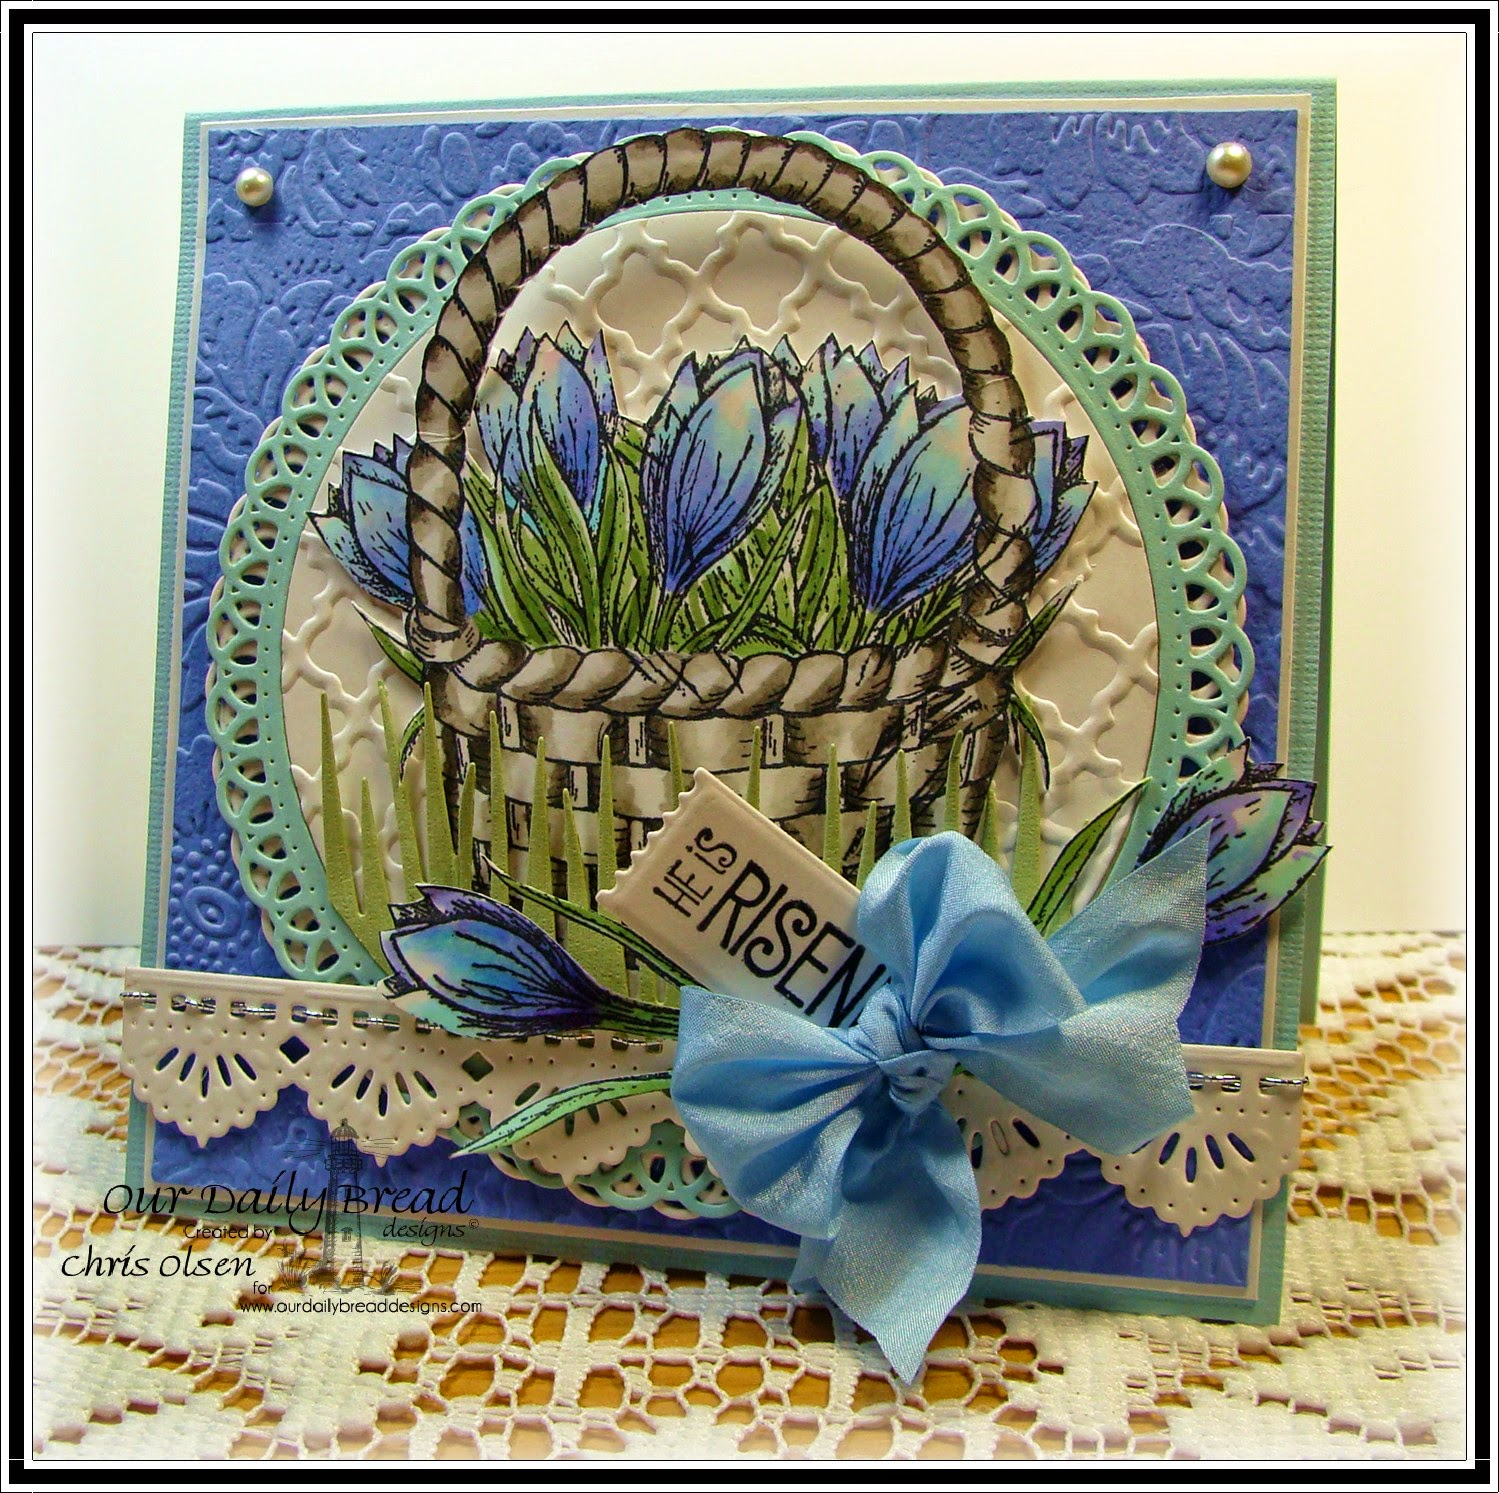 Our Daily Bread Designs, The Lord is Risen, Basket of Blessings, Happy Resurrection Day, Mini Tag dies, Beautiful Borders die, grass dies, designed by Chris Olsen